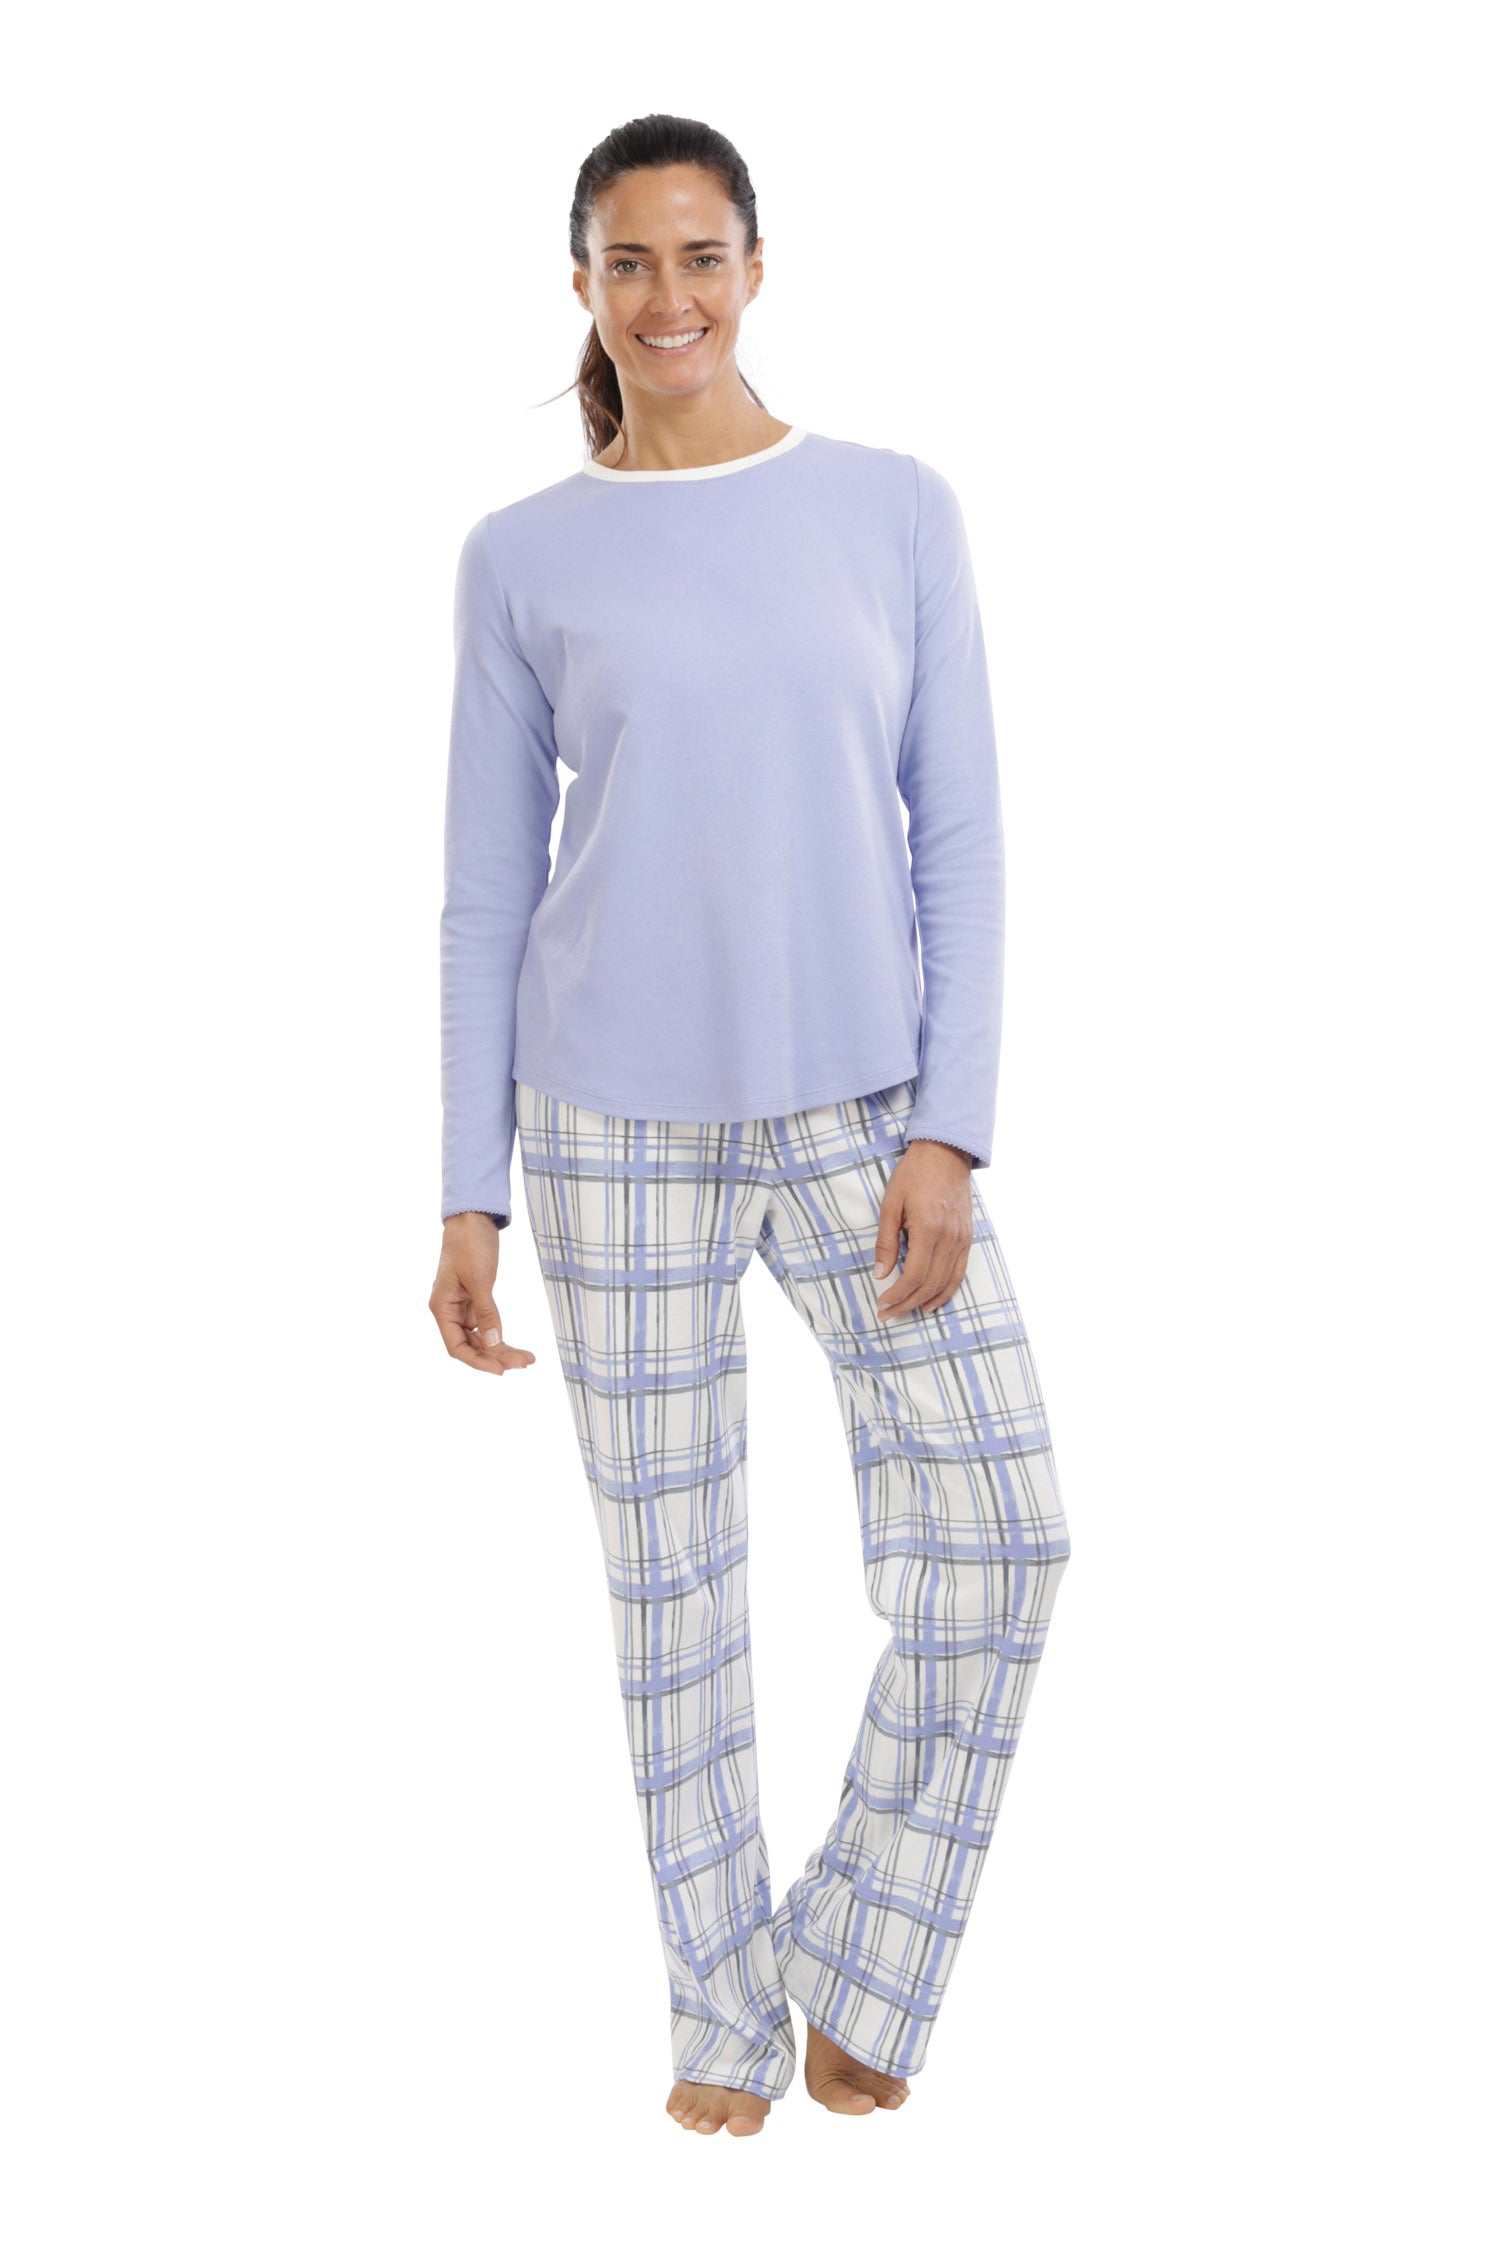 The Periwinkle Bloom in Plaid (Small/Tall Only))